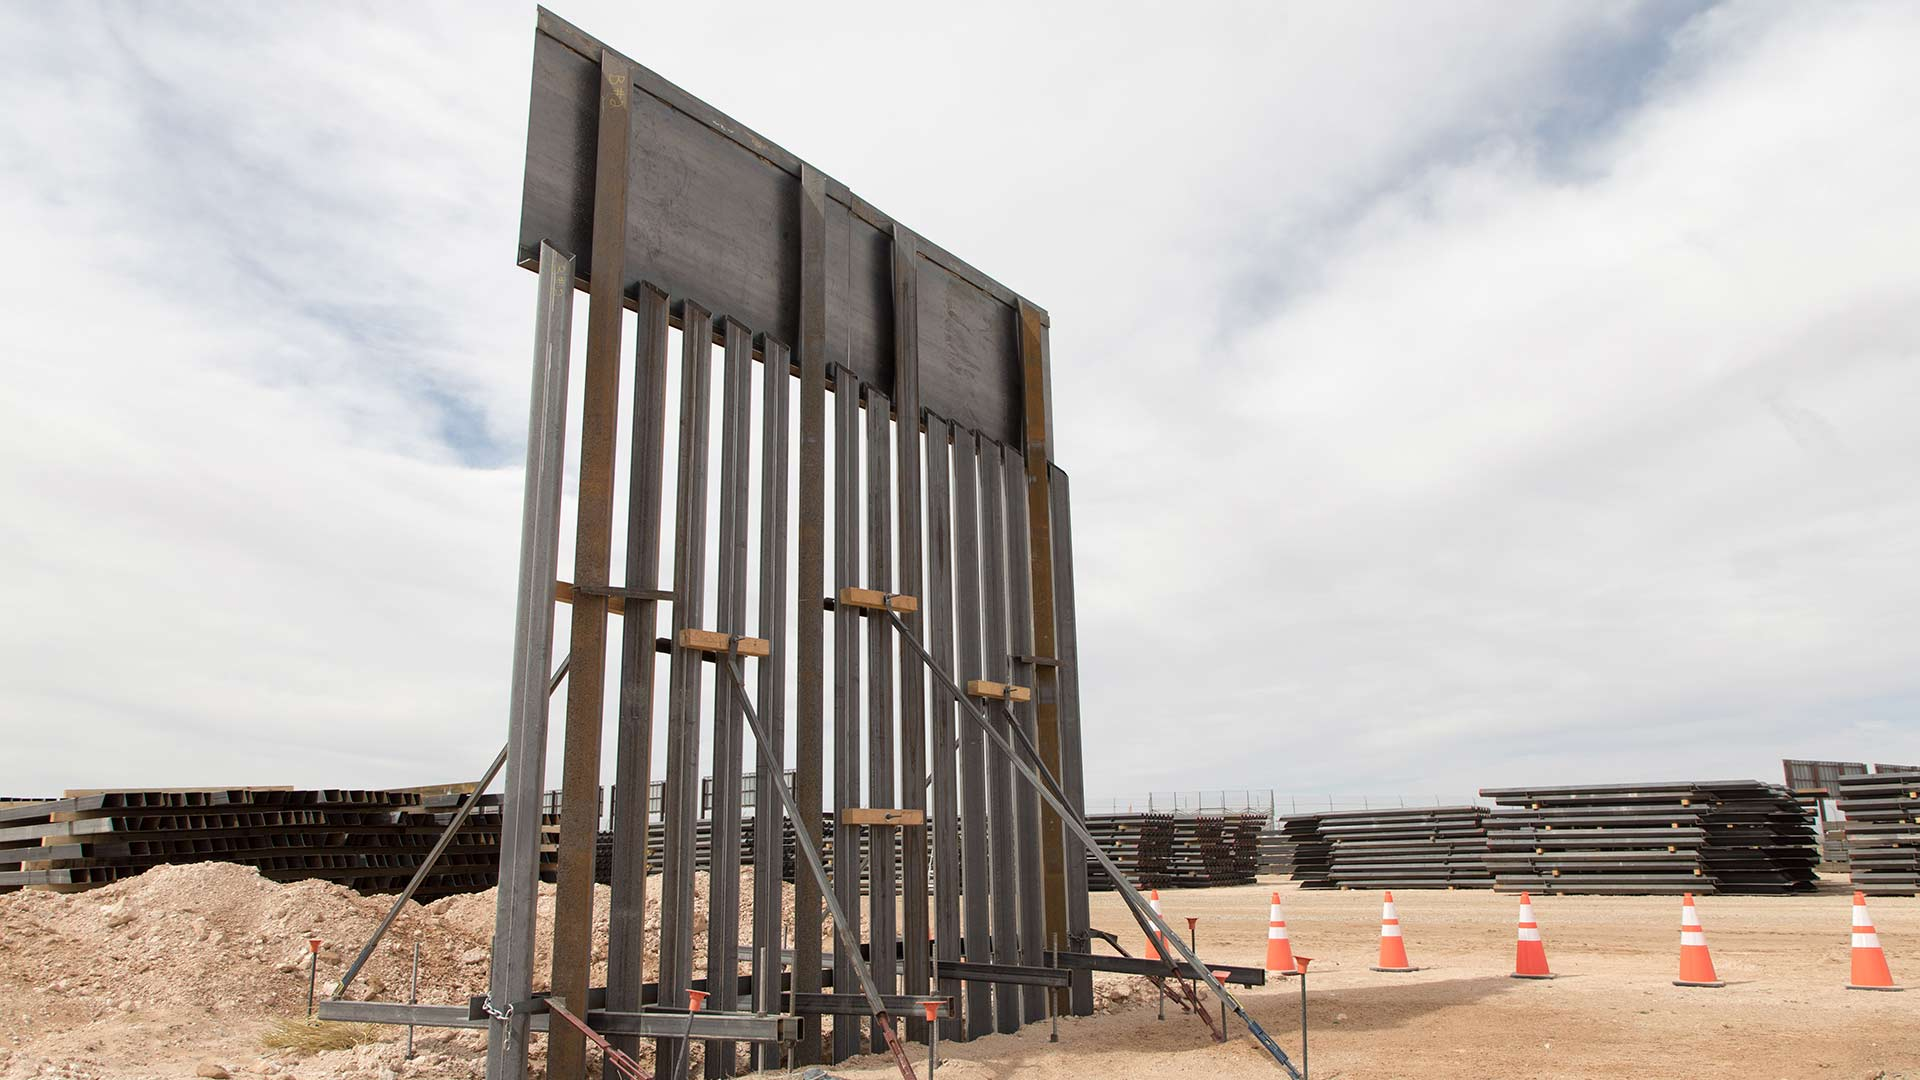 Bollard-style fencing is staged near the Santa Teresa Port of Entry, in New Mexico, April 2018.